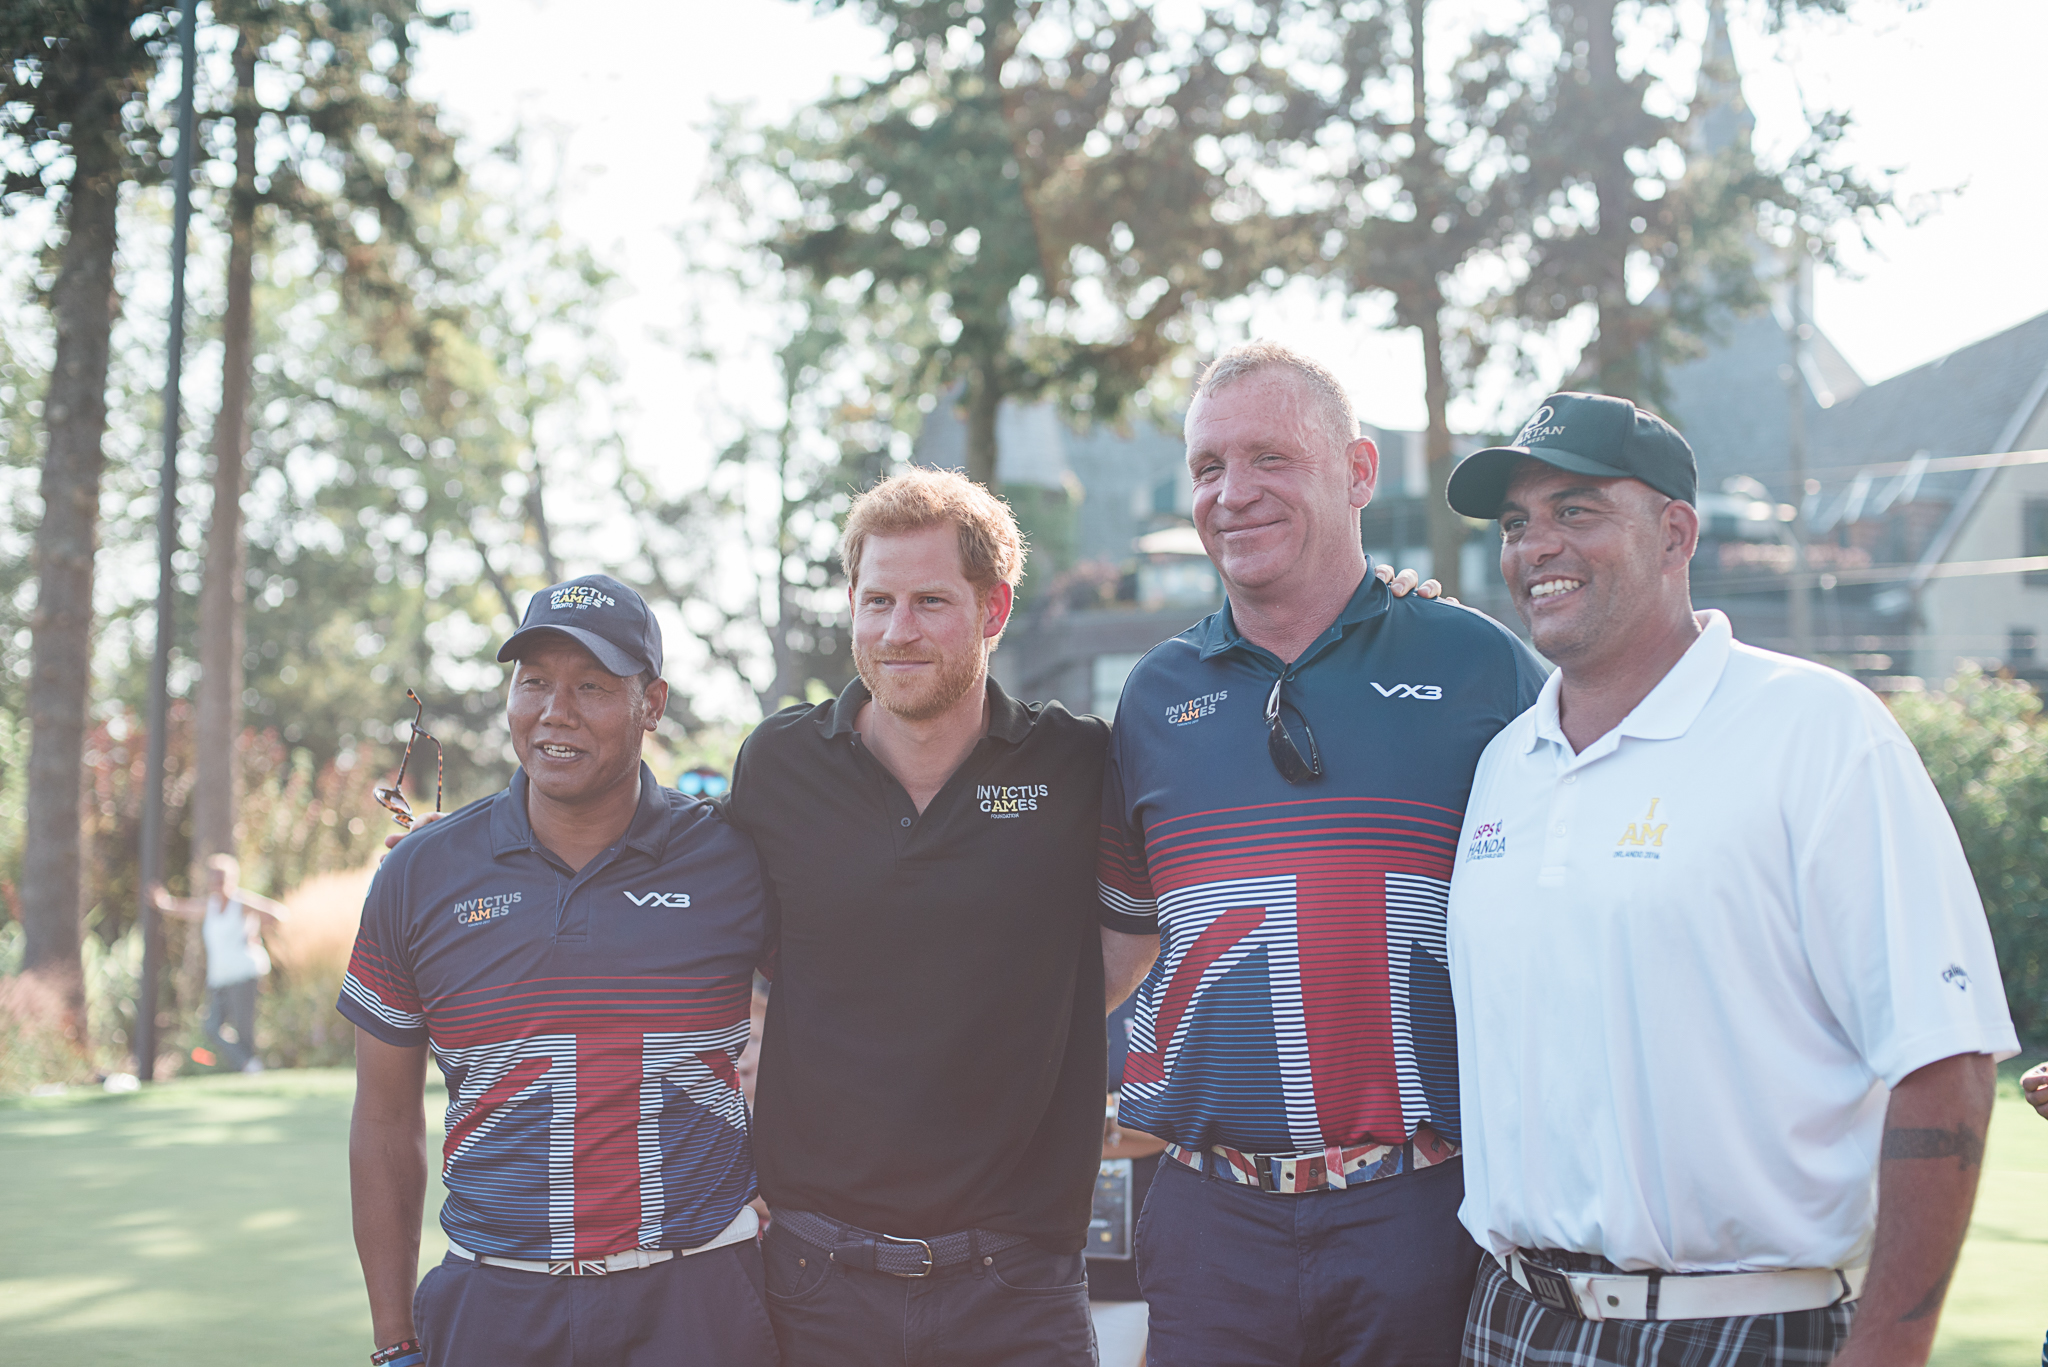 Prince Harry poses with members of the UK's Invictus Golf Team.